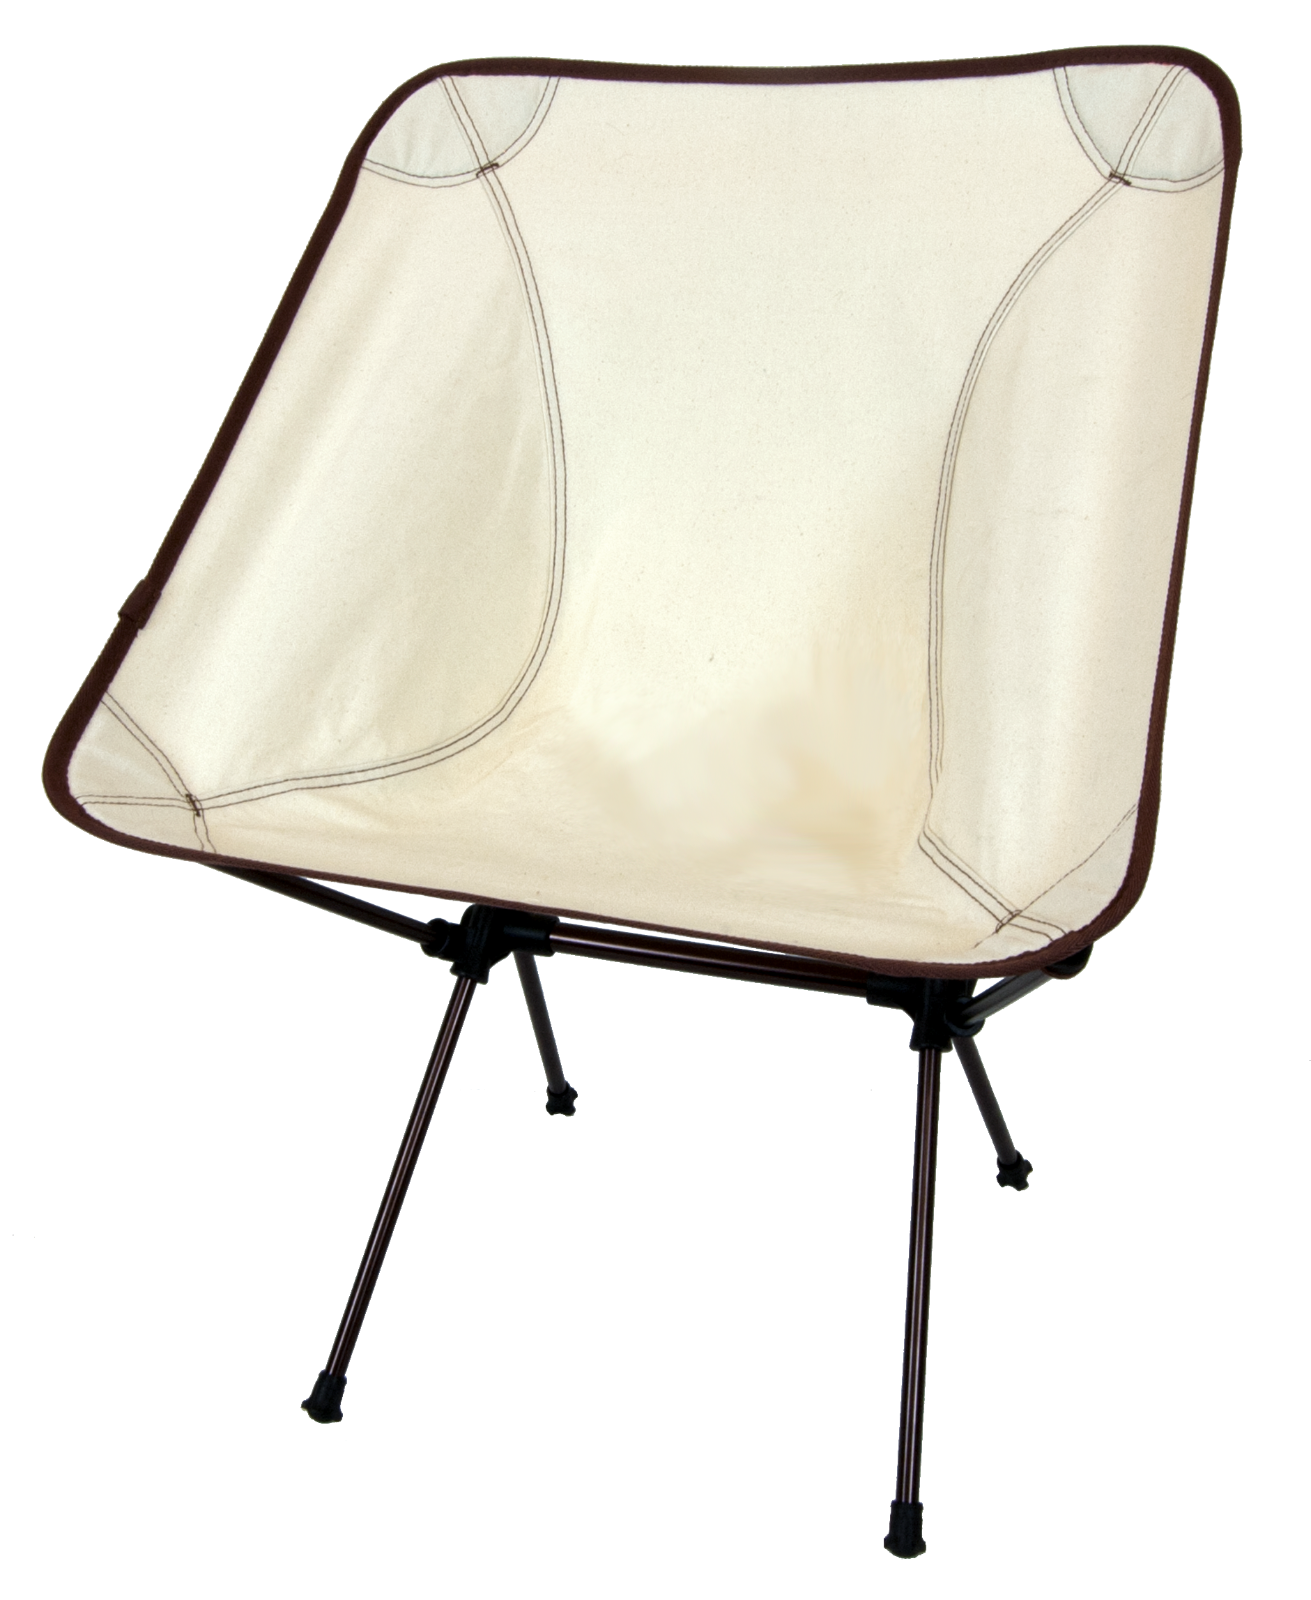 TravelChair LIMITED EDITION Joey C-Series Joey EDITION LIGHTWEIGHT COMPACT PORTABLE CHAIR 5528f7